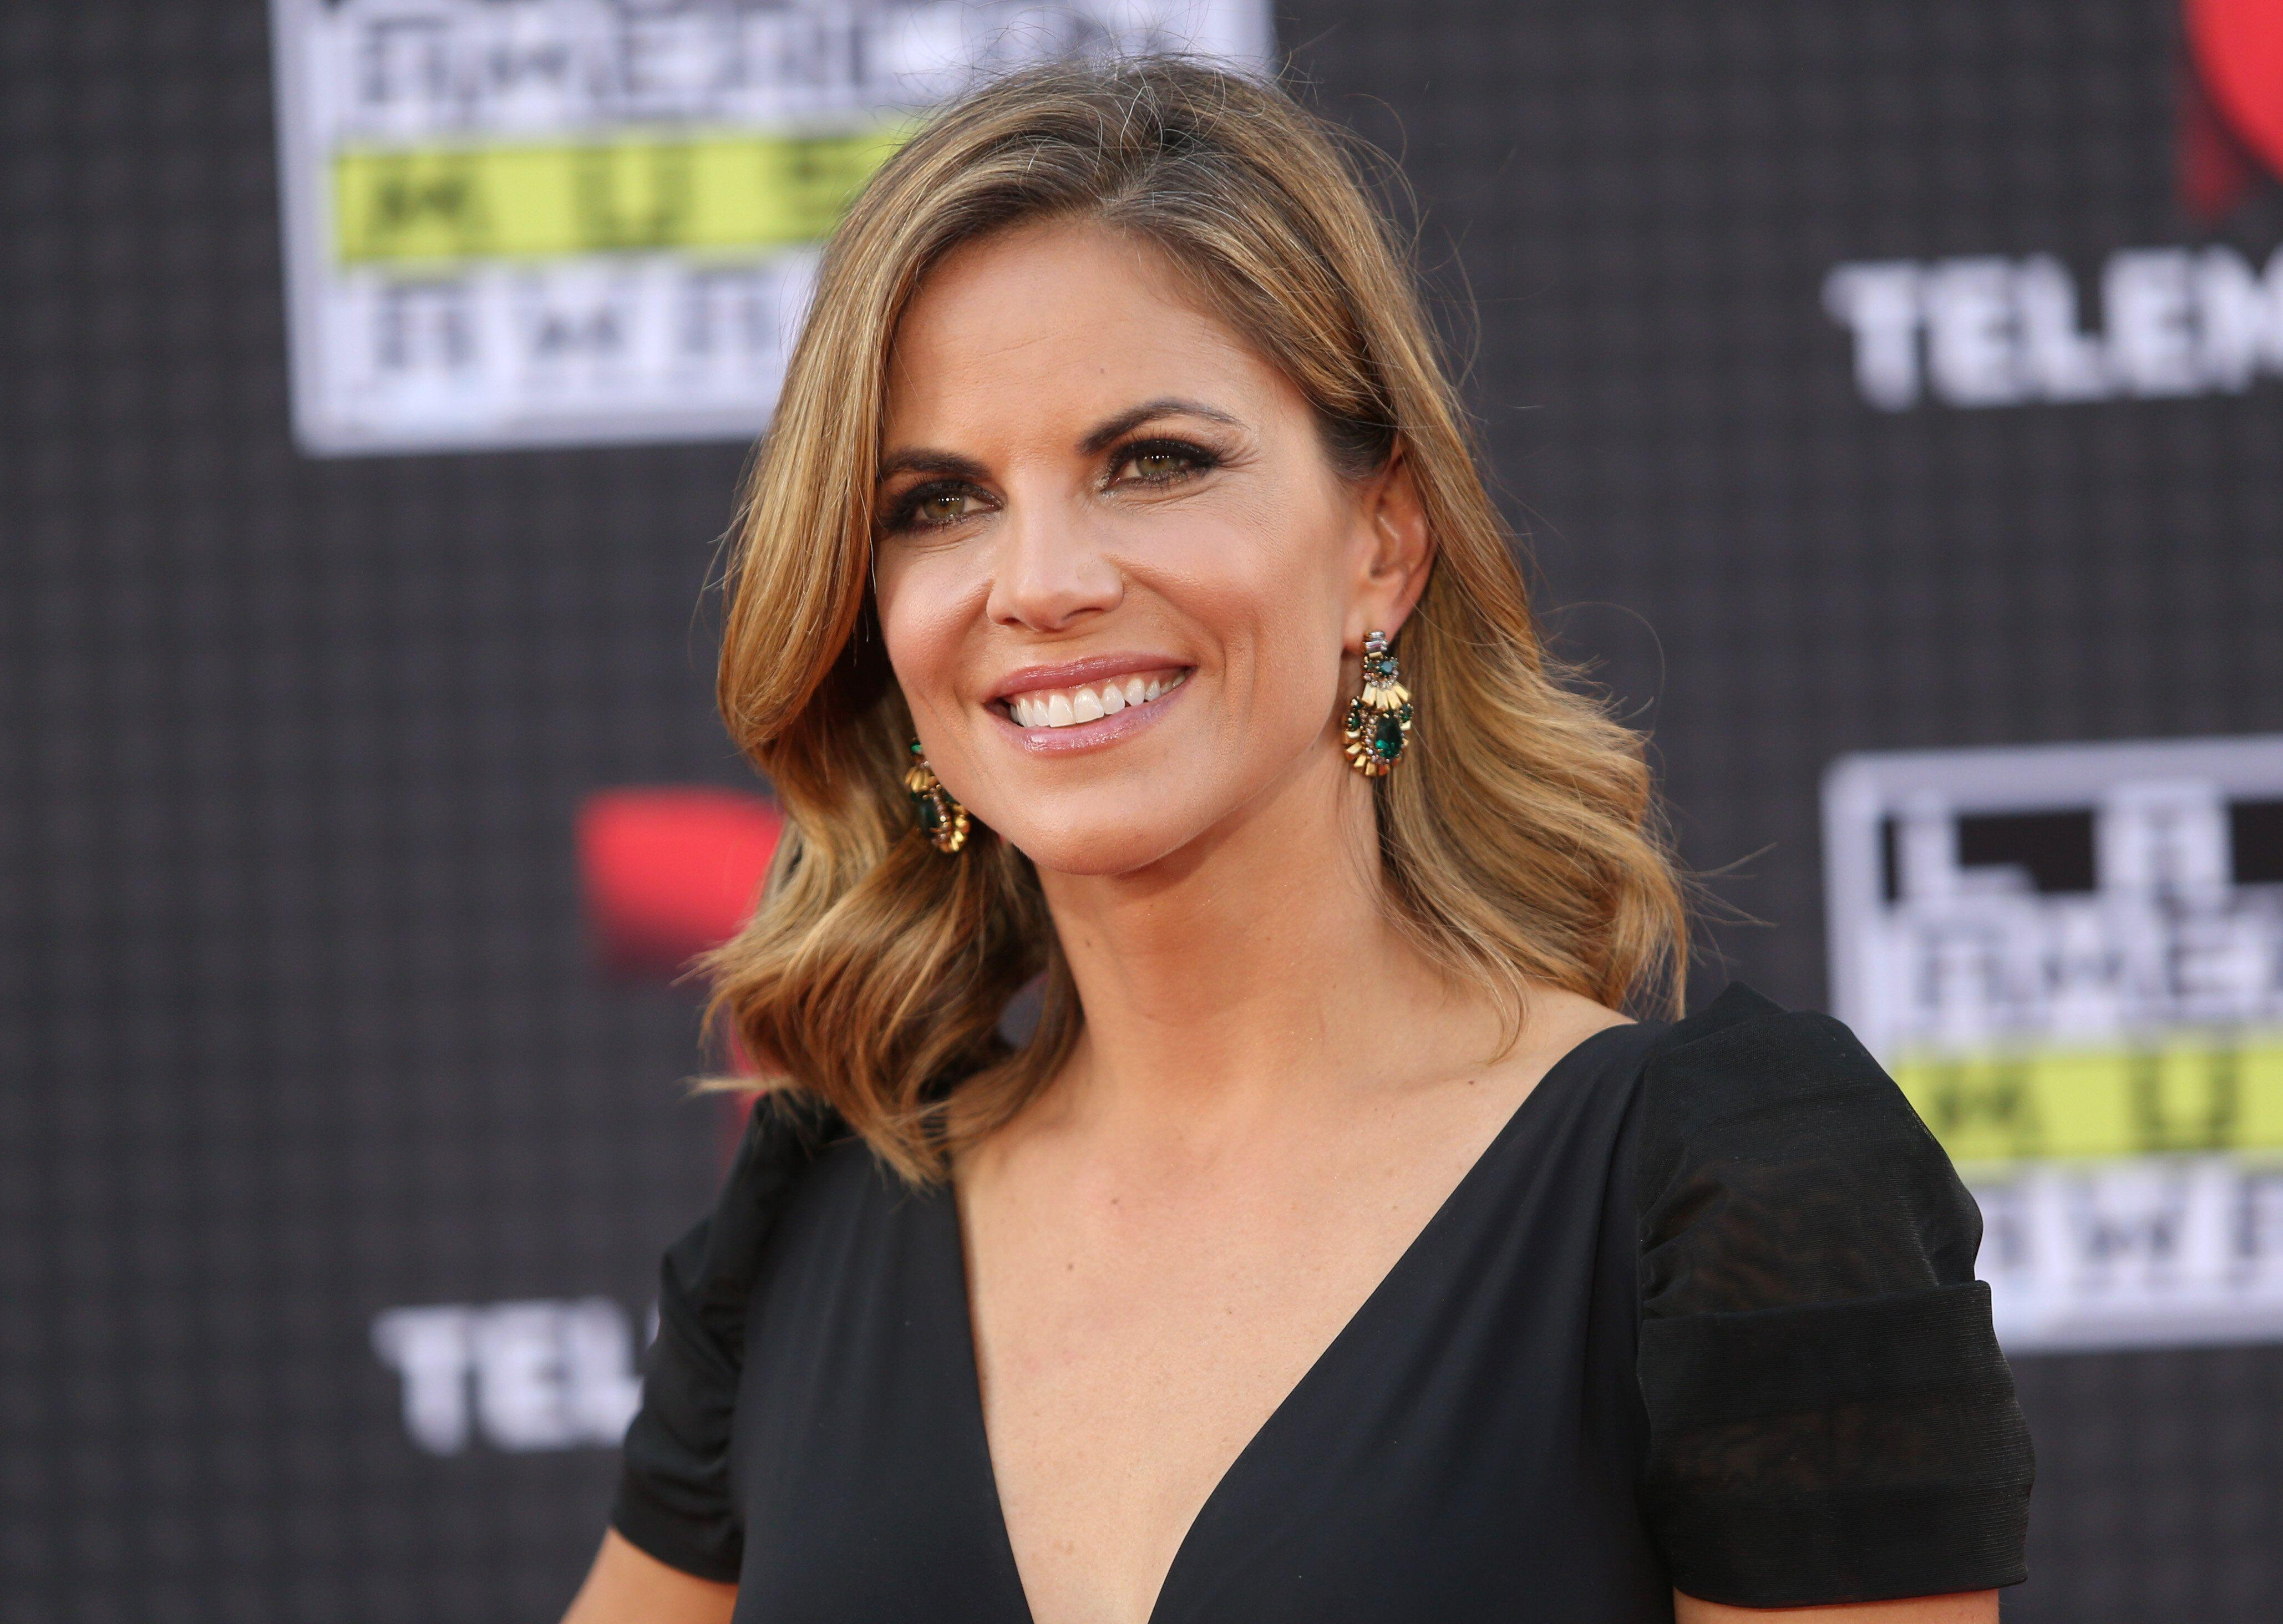 NBC's Natalie Morales and her husband have combined all but one of their financial accounts